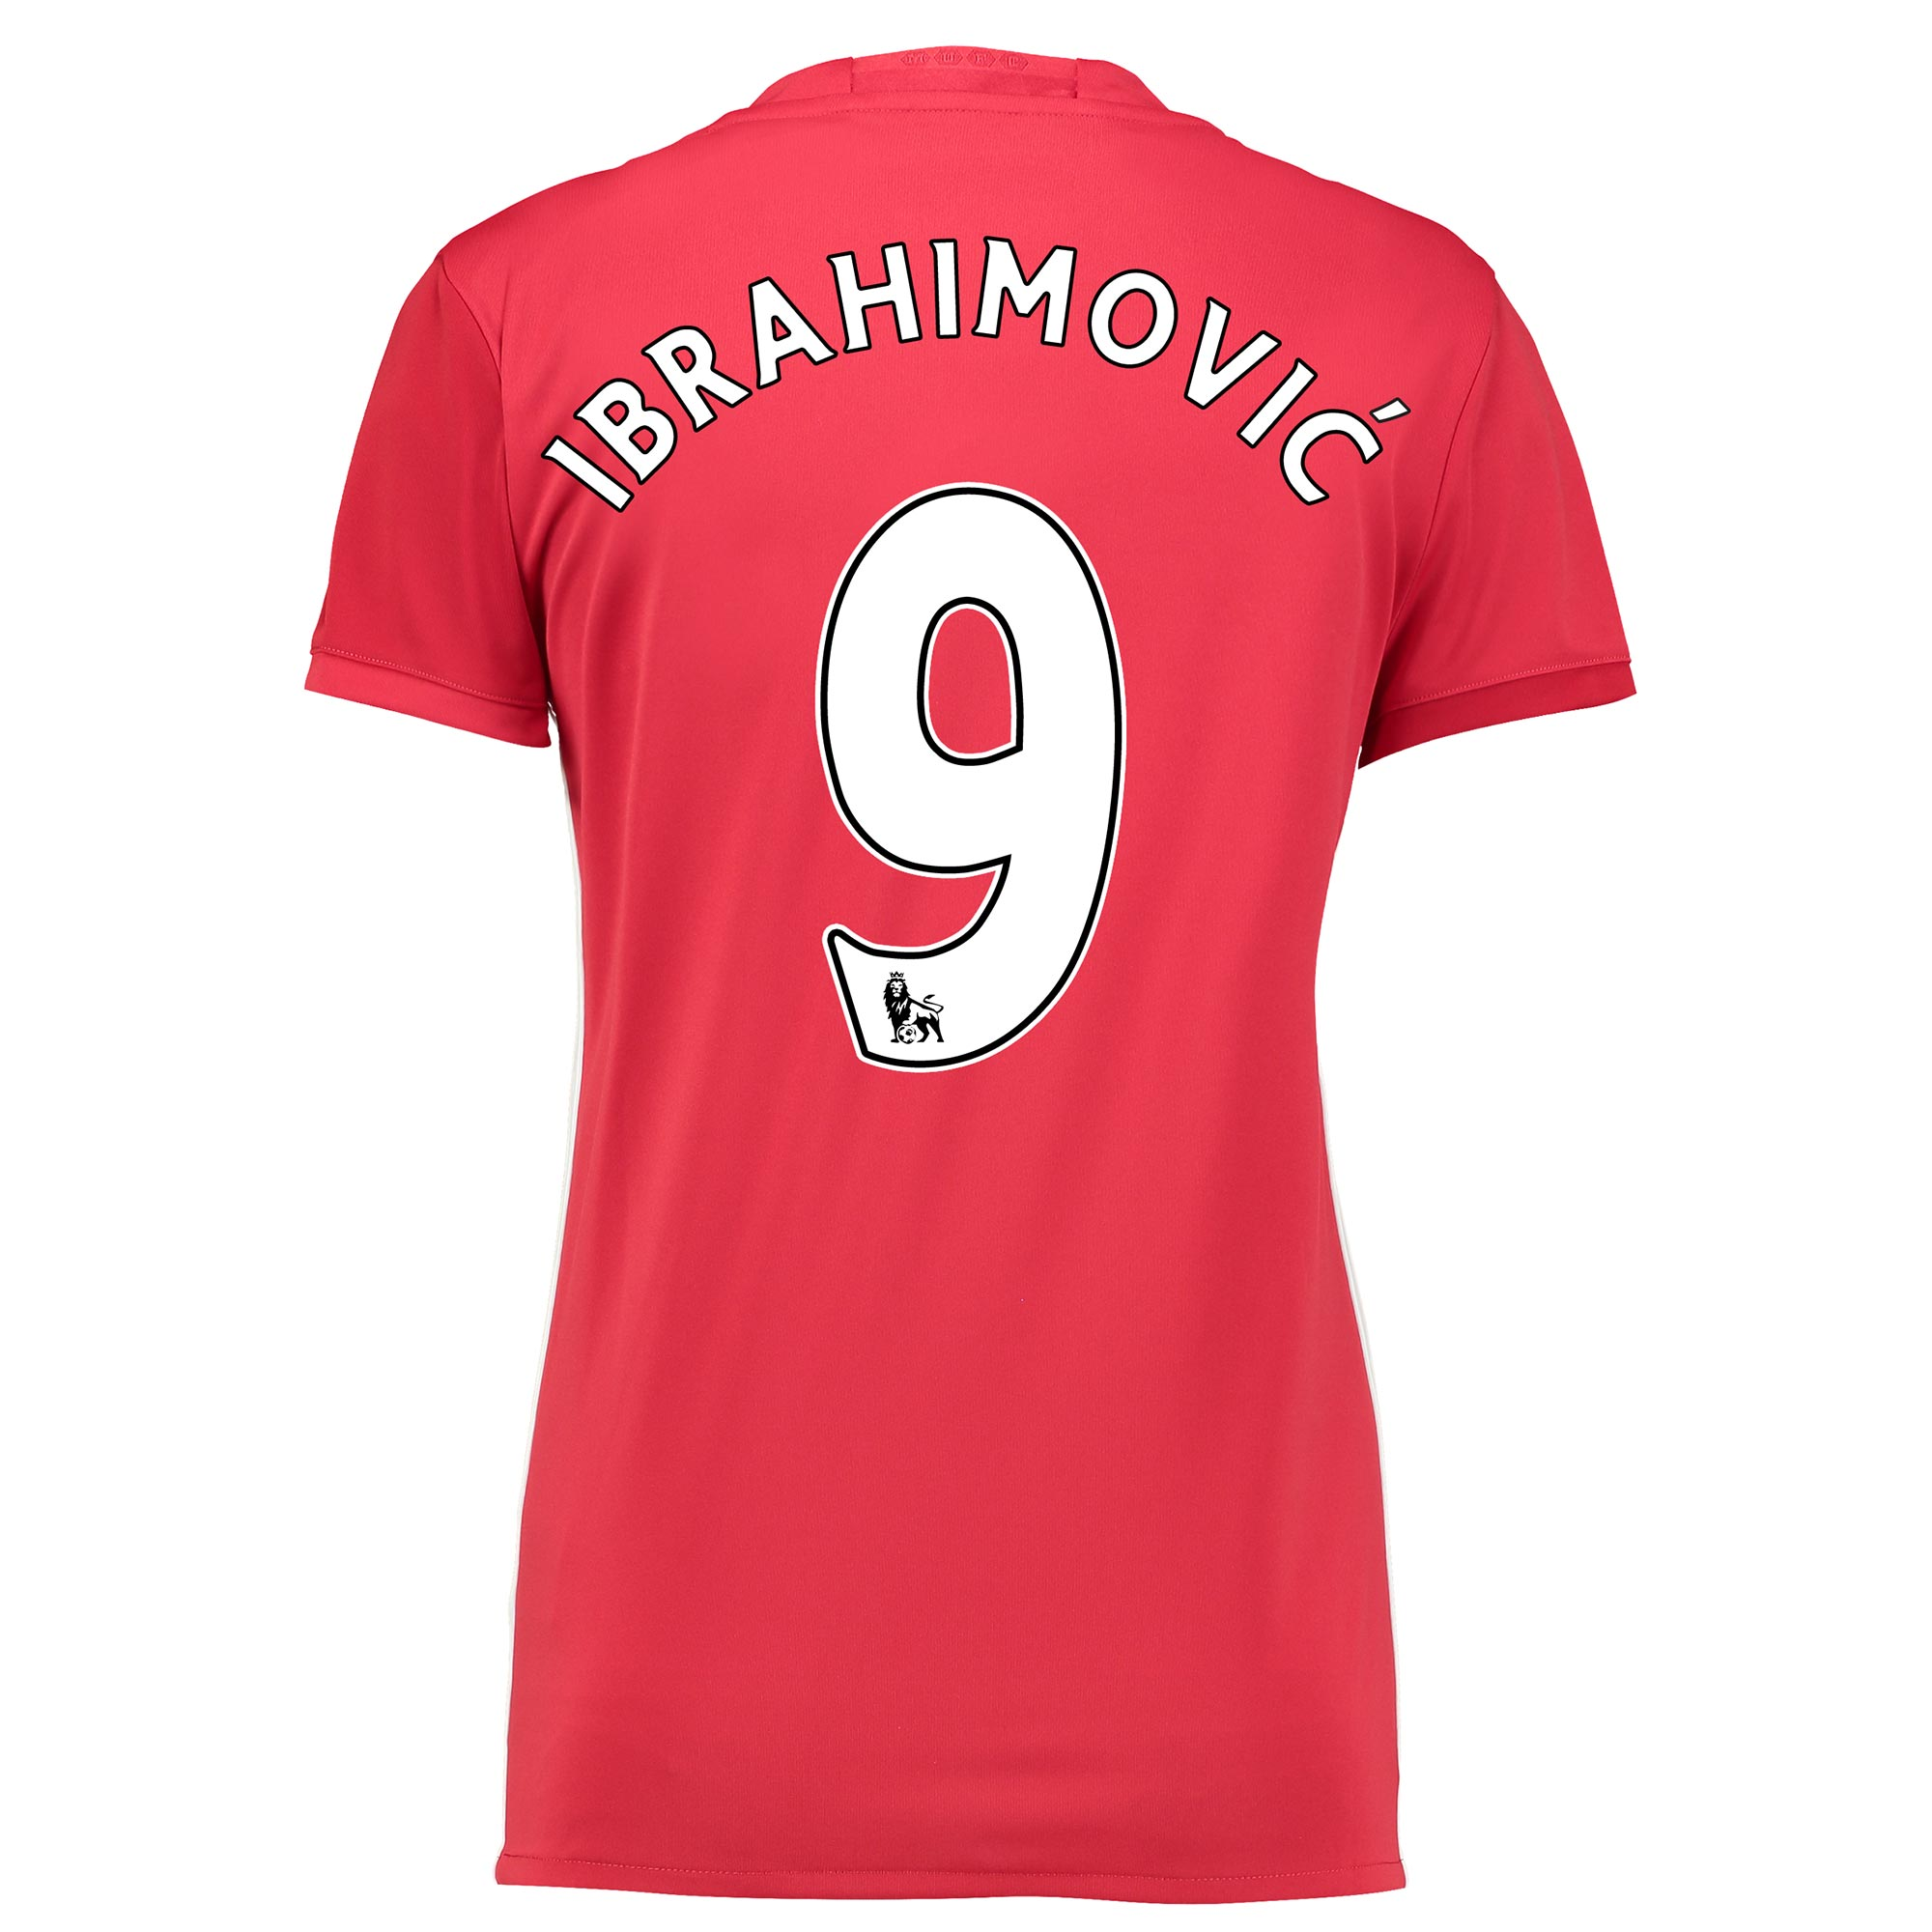 Manchester United Home Shirt 2016-17 - Womens with Ibrahimovic 9 print